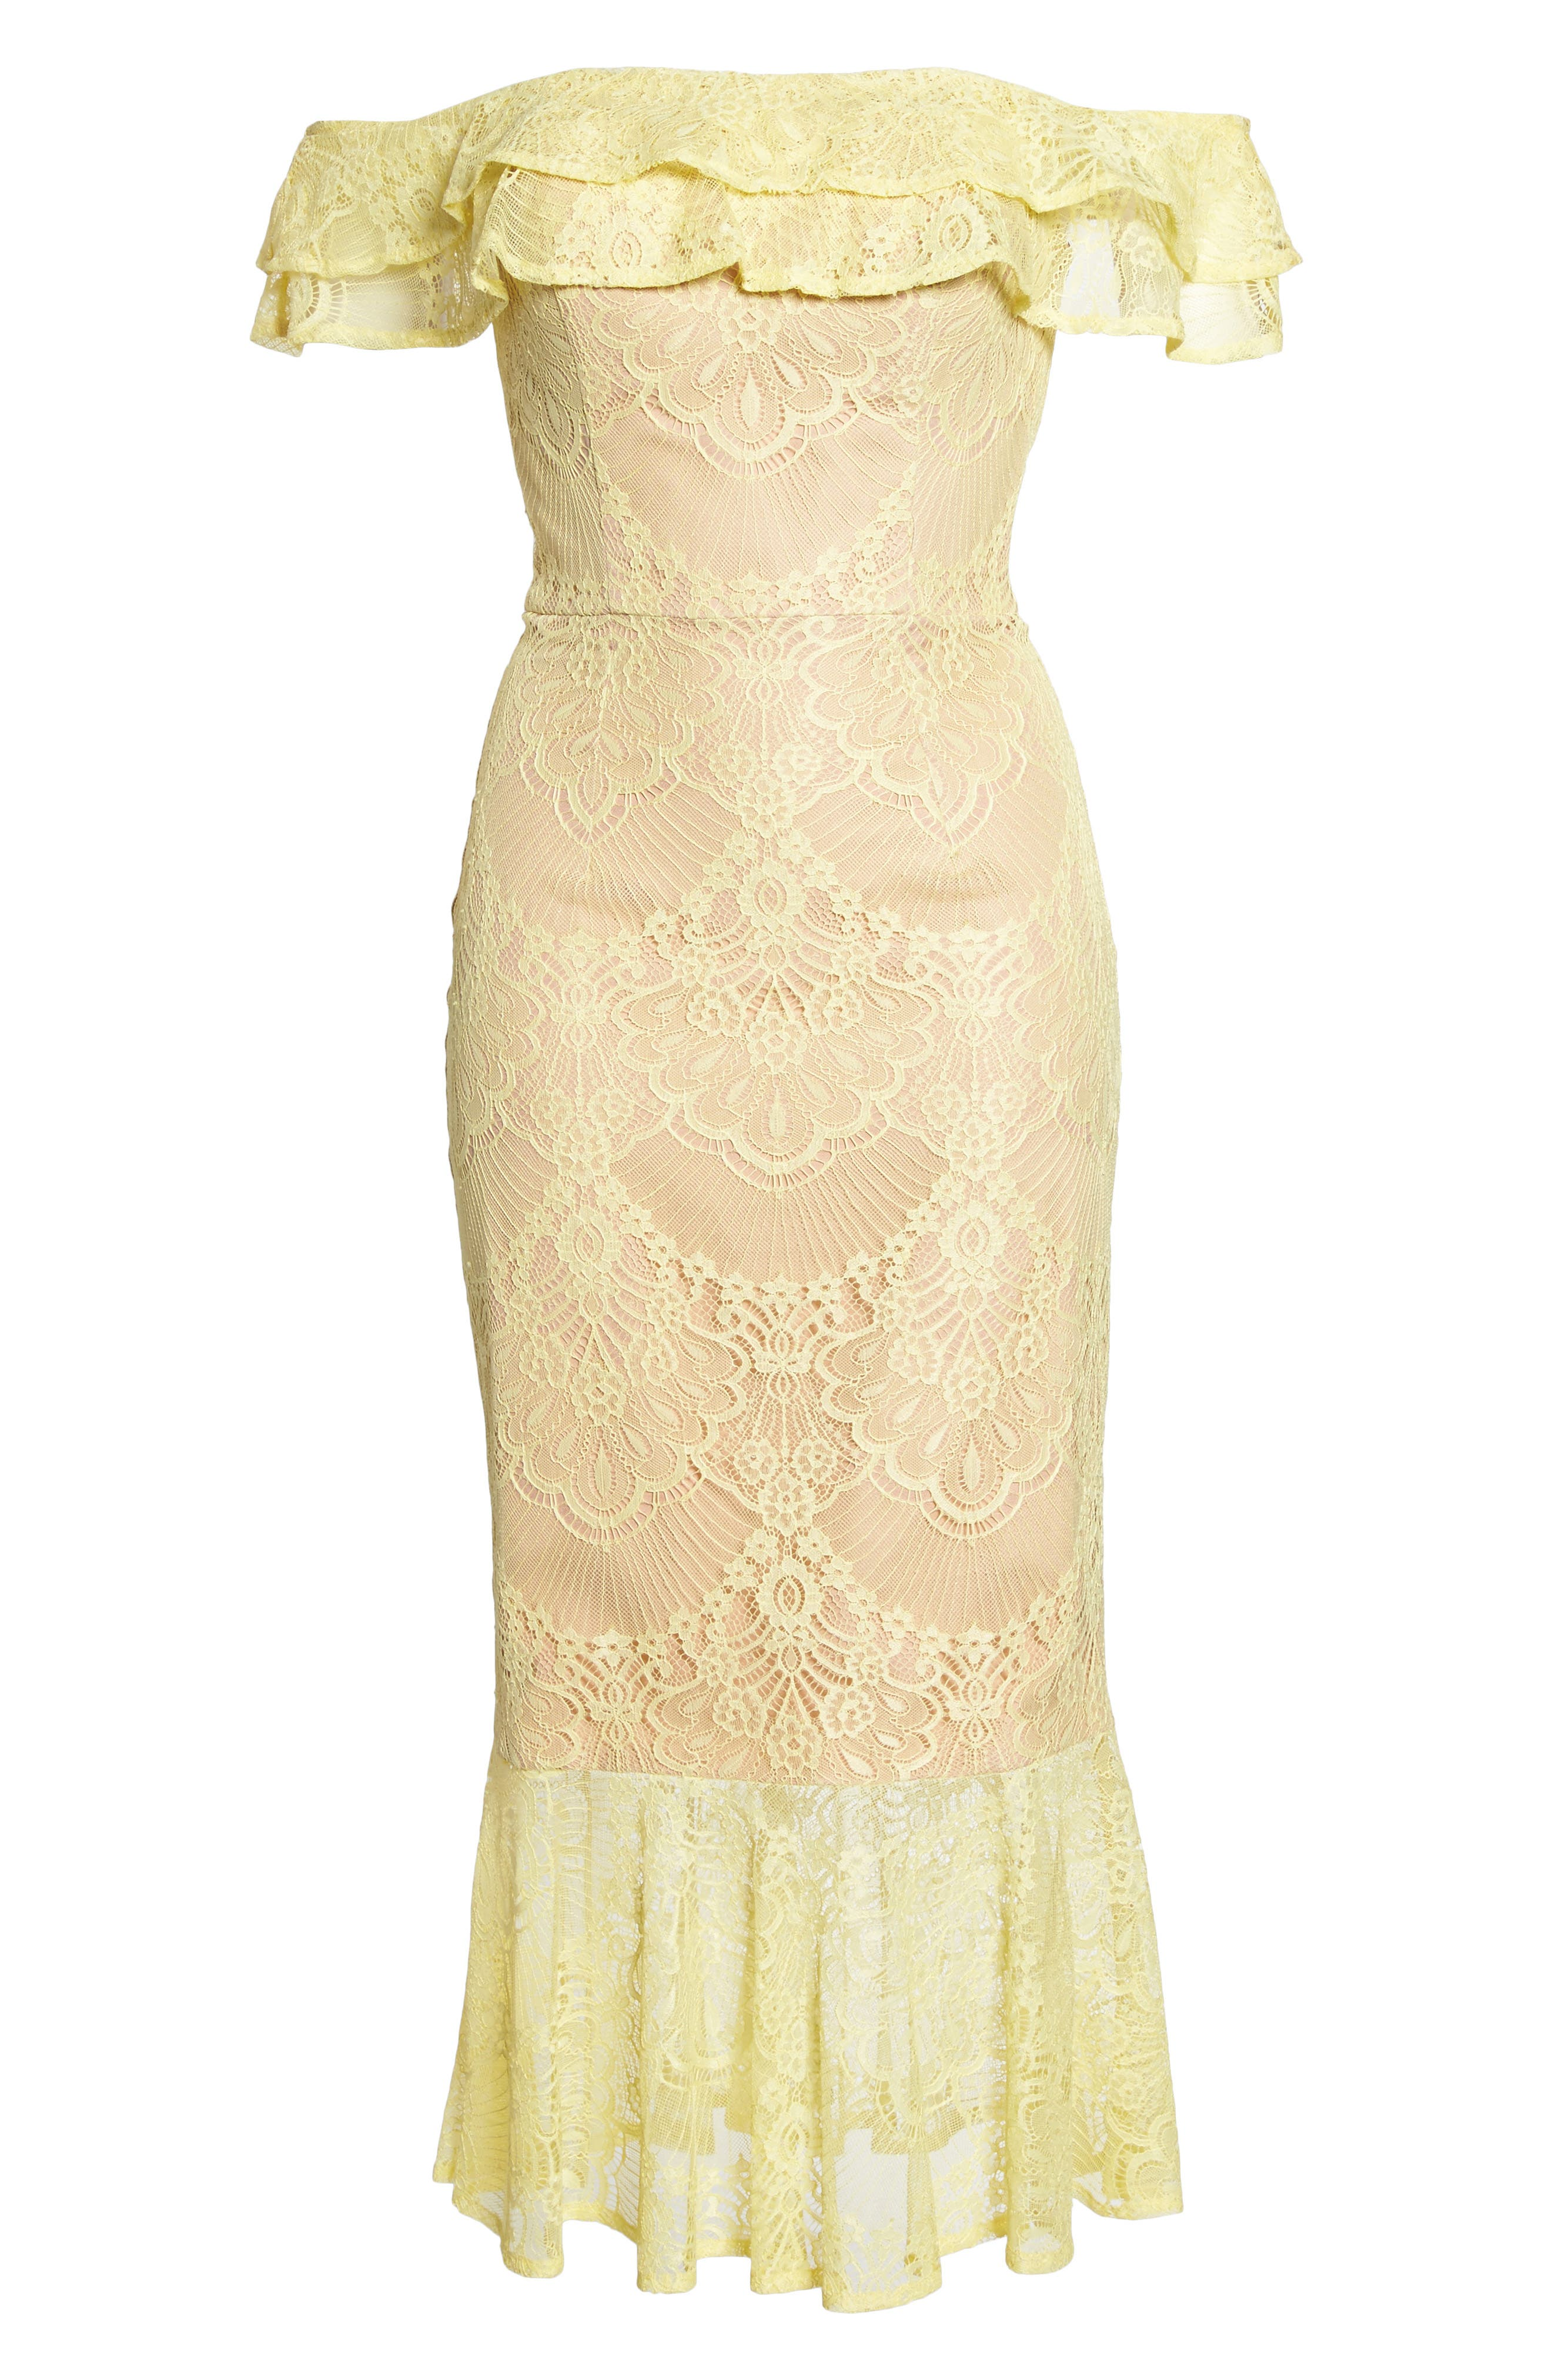 Toril Off the Shoulder Lace Midi Dress,                             Alternate thumbnail 6, color,                             Yellow